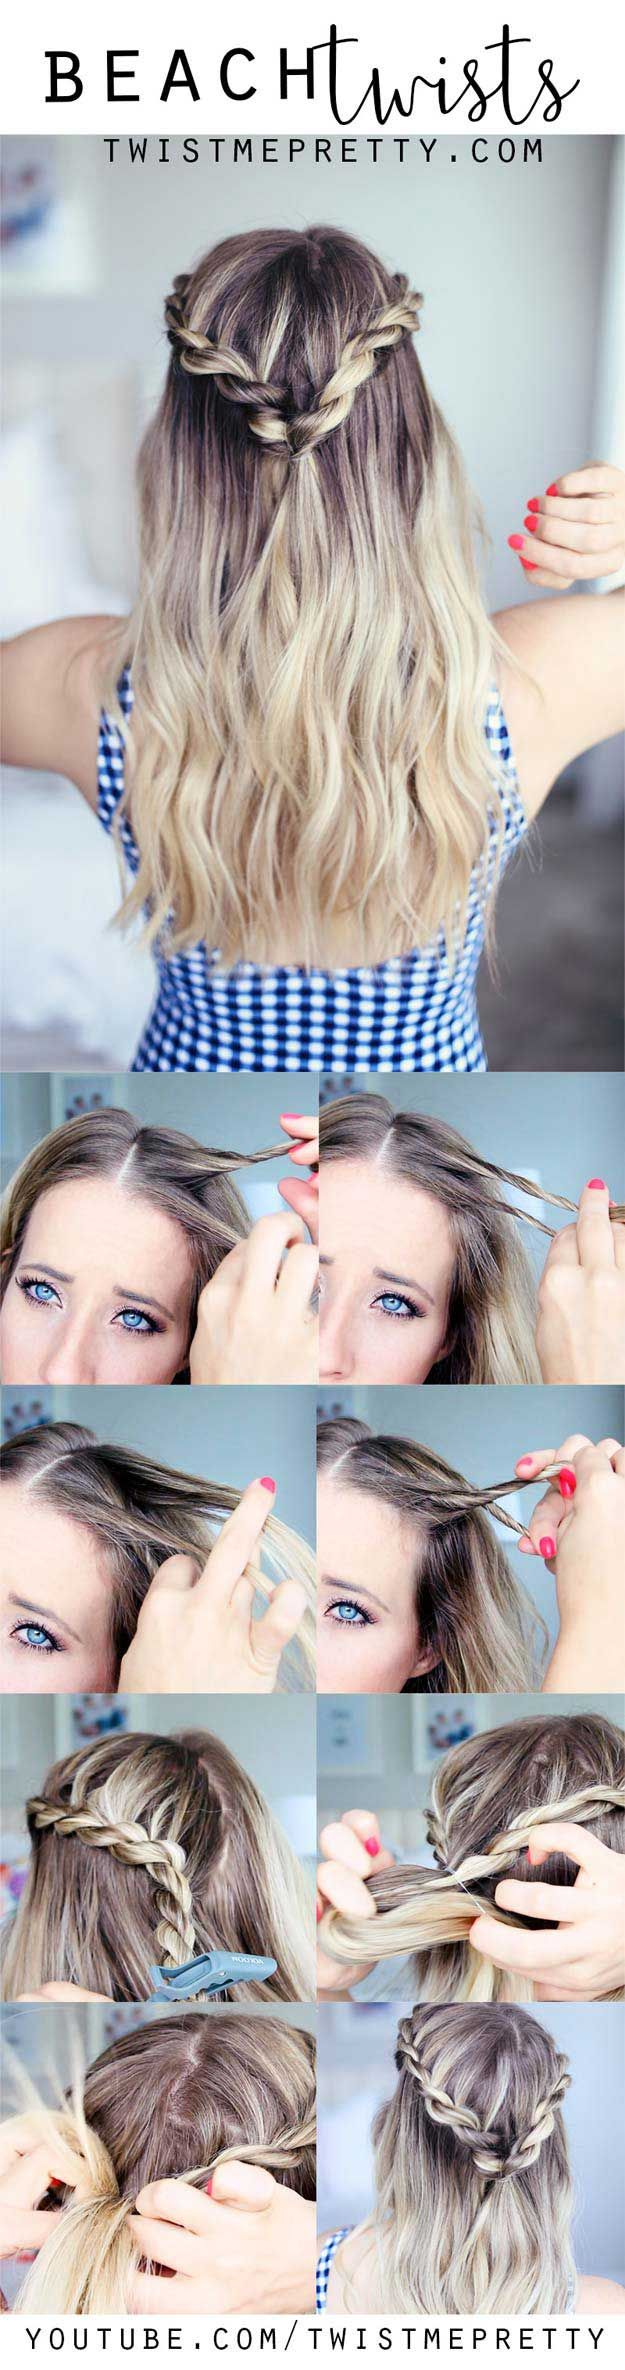 Best Hairstyles for Summer - Cute Summer Hairstyle - Beach Twists - Easy and Cut...